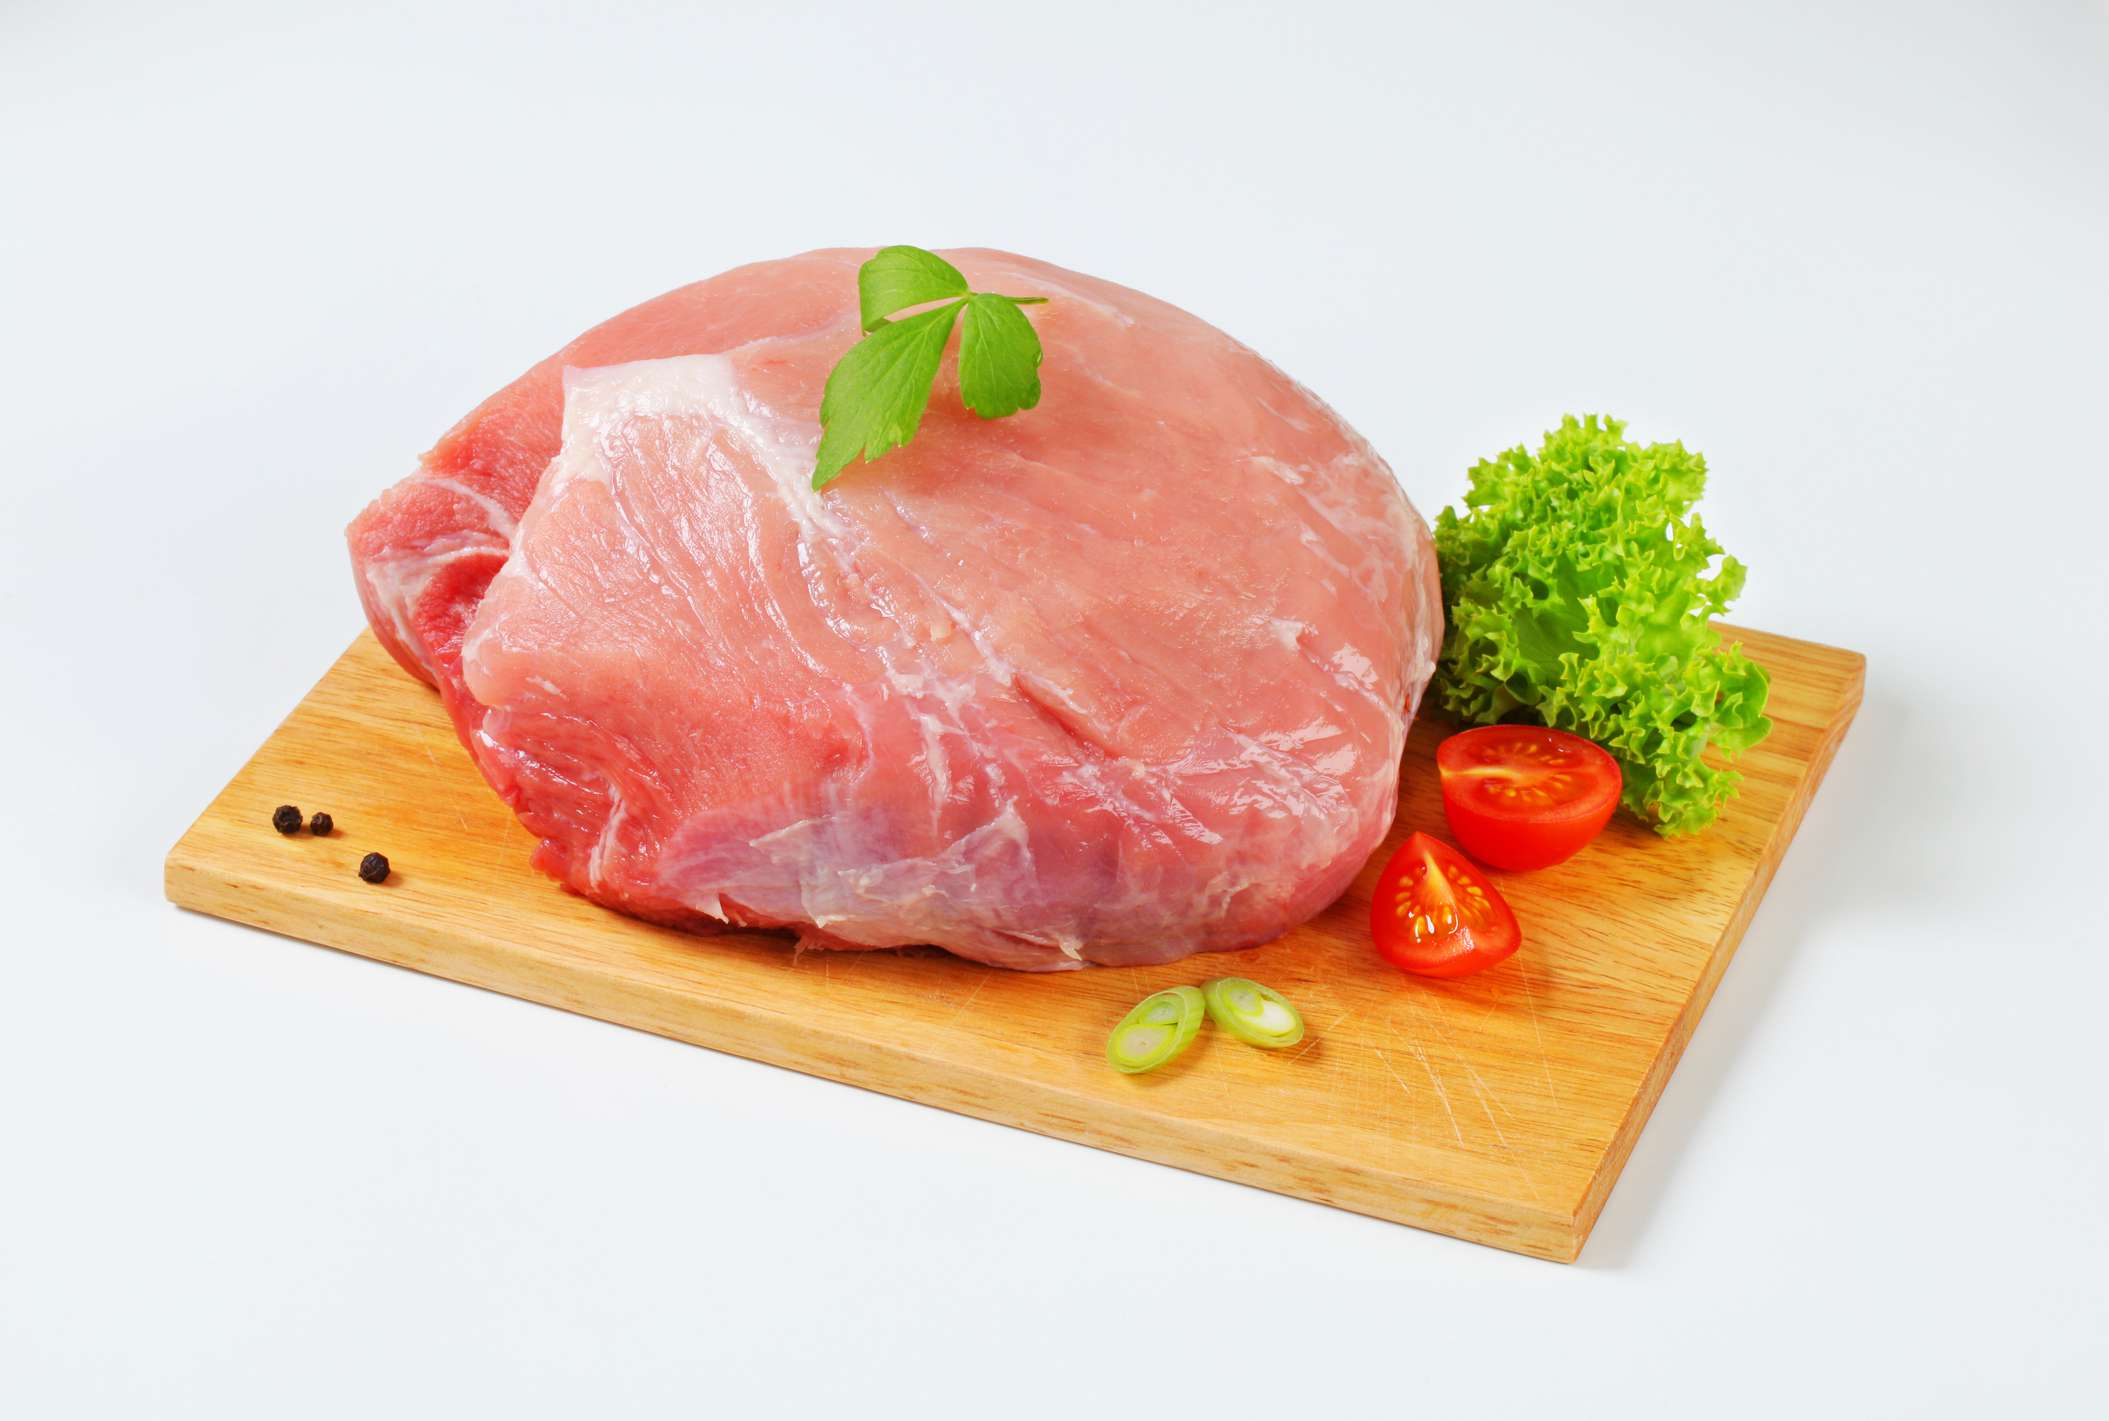 Raw joint pork meat on a cutting board